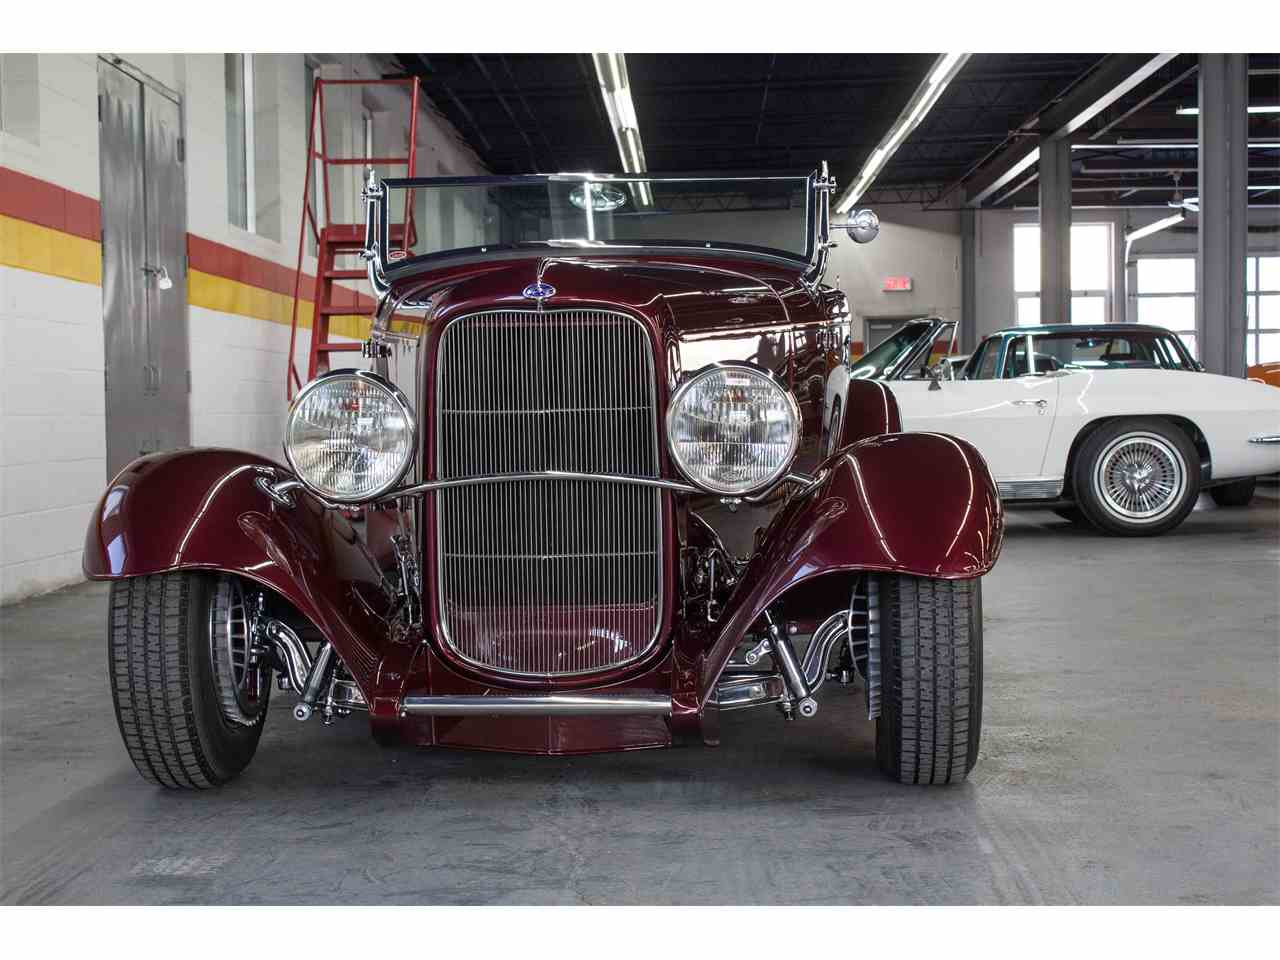 Large Picture of Classic '32 Hot Rod located in MONTREAL Quebec - $139,995.00 - MSAV